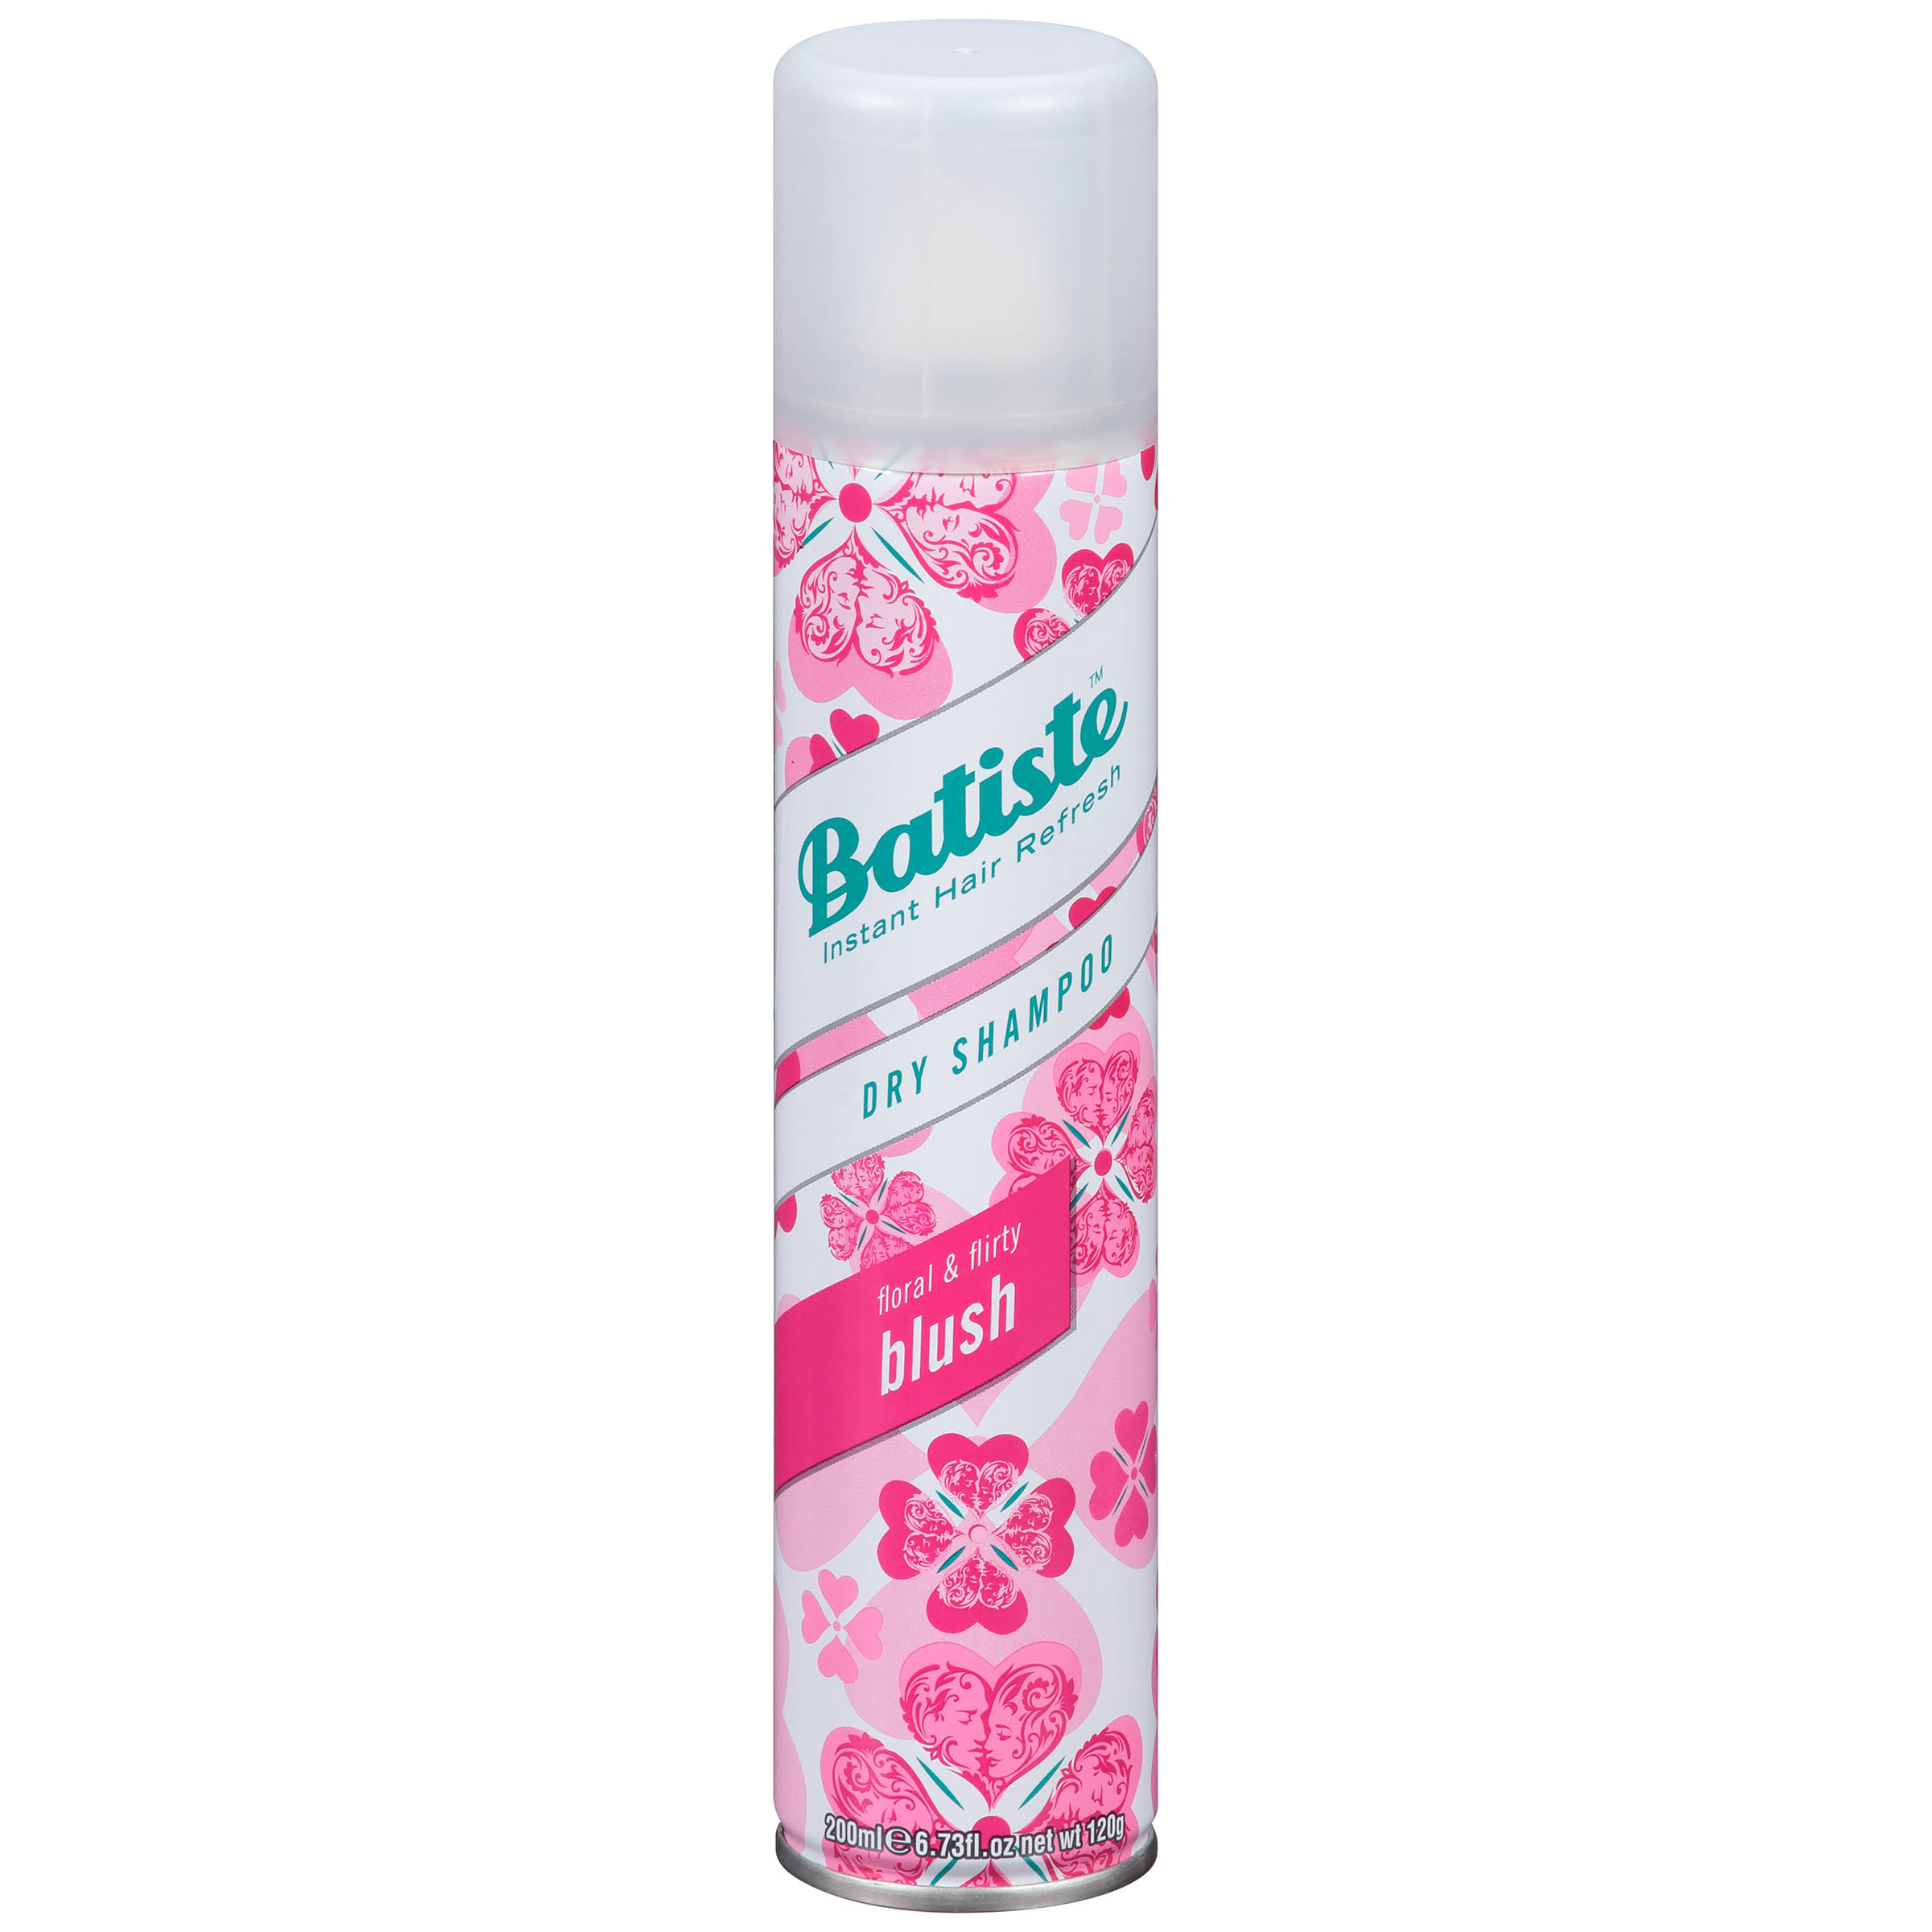 Batiste Dry Shampoo - Floral Flirty Blush, 200ml